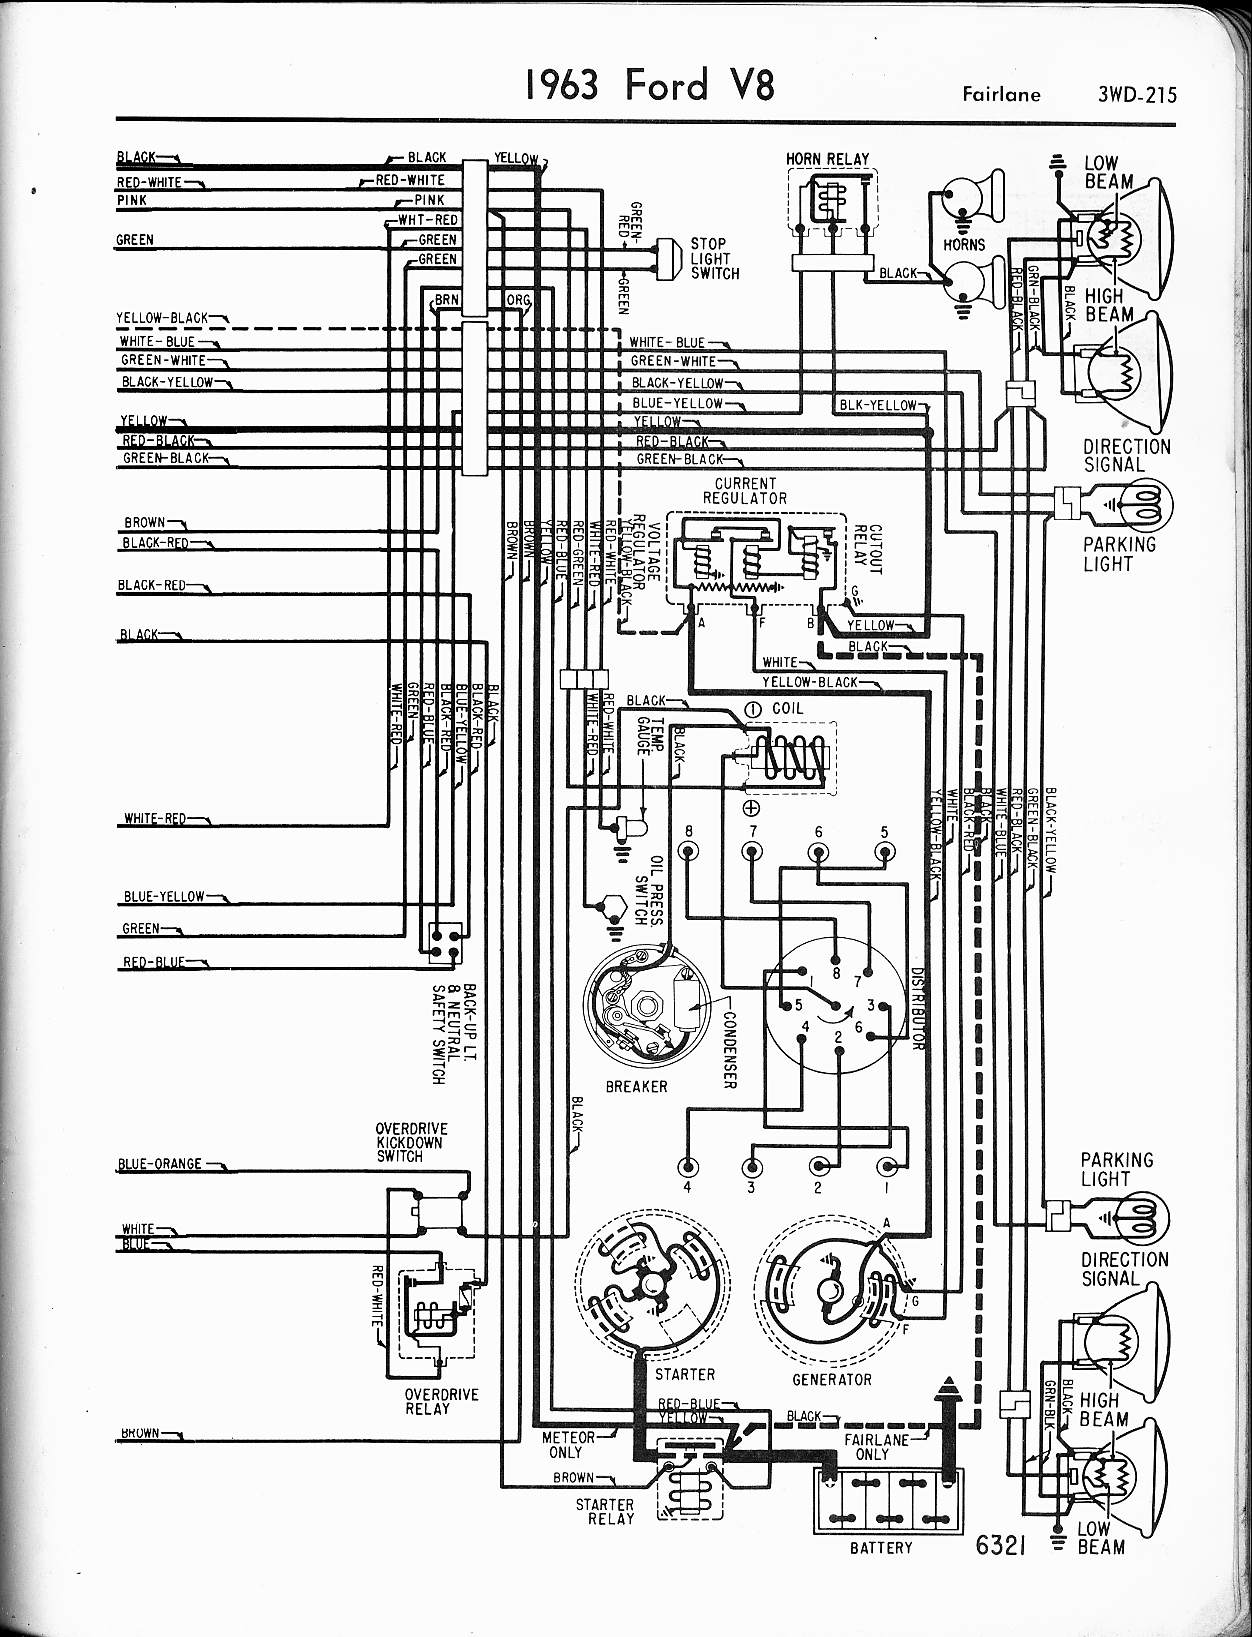 1967 Fairlane Wiring Diagram Free. 1967. Free Printable